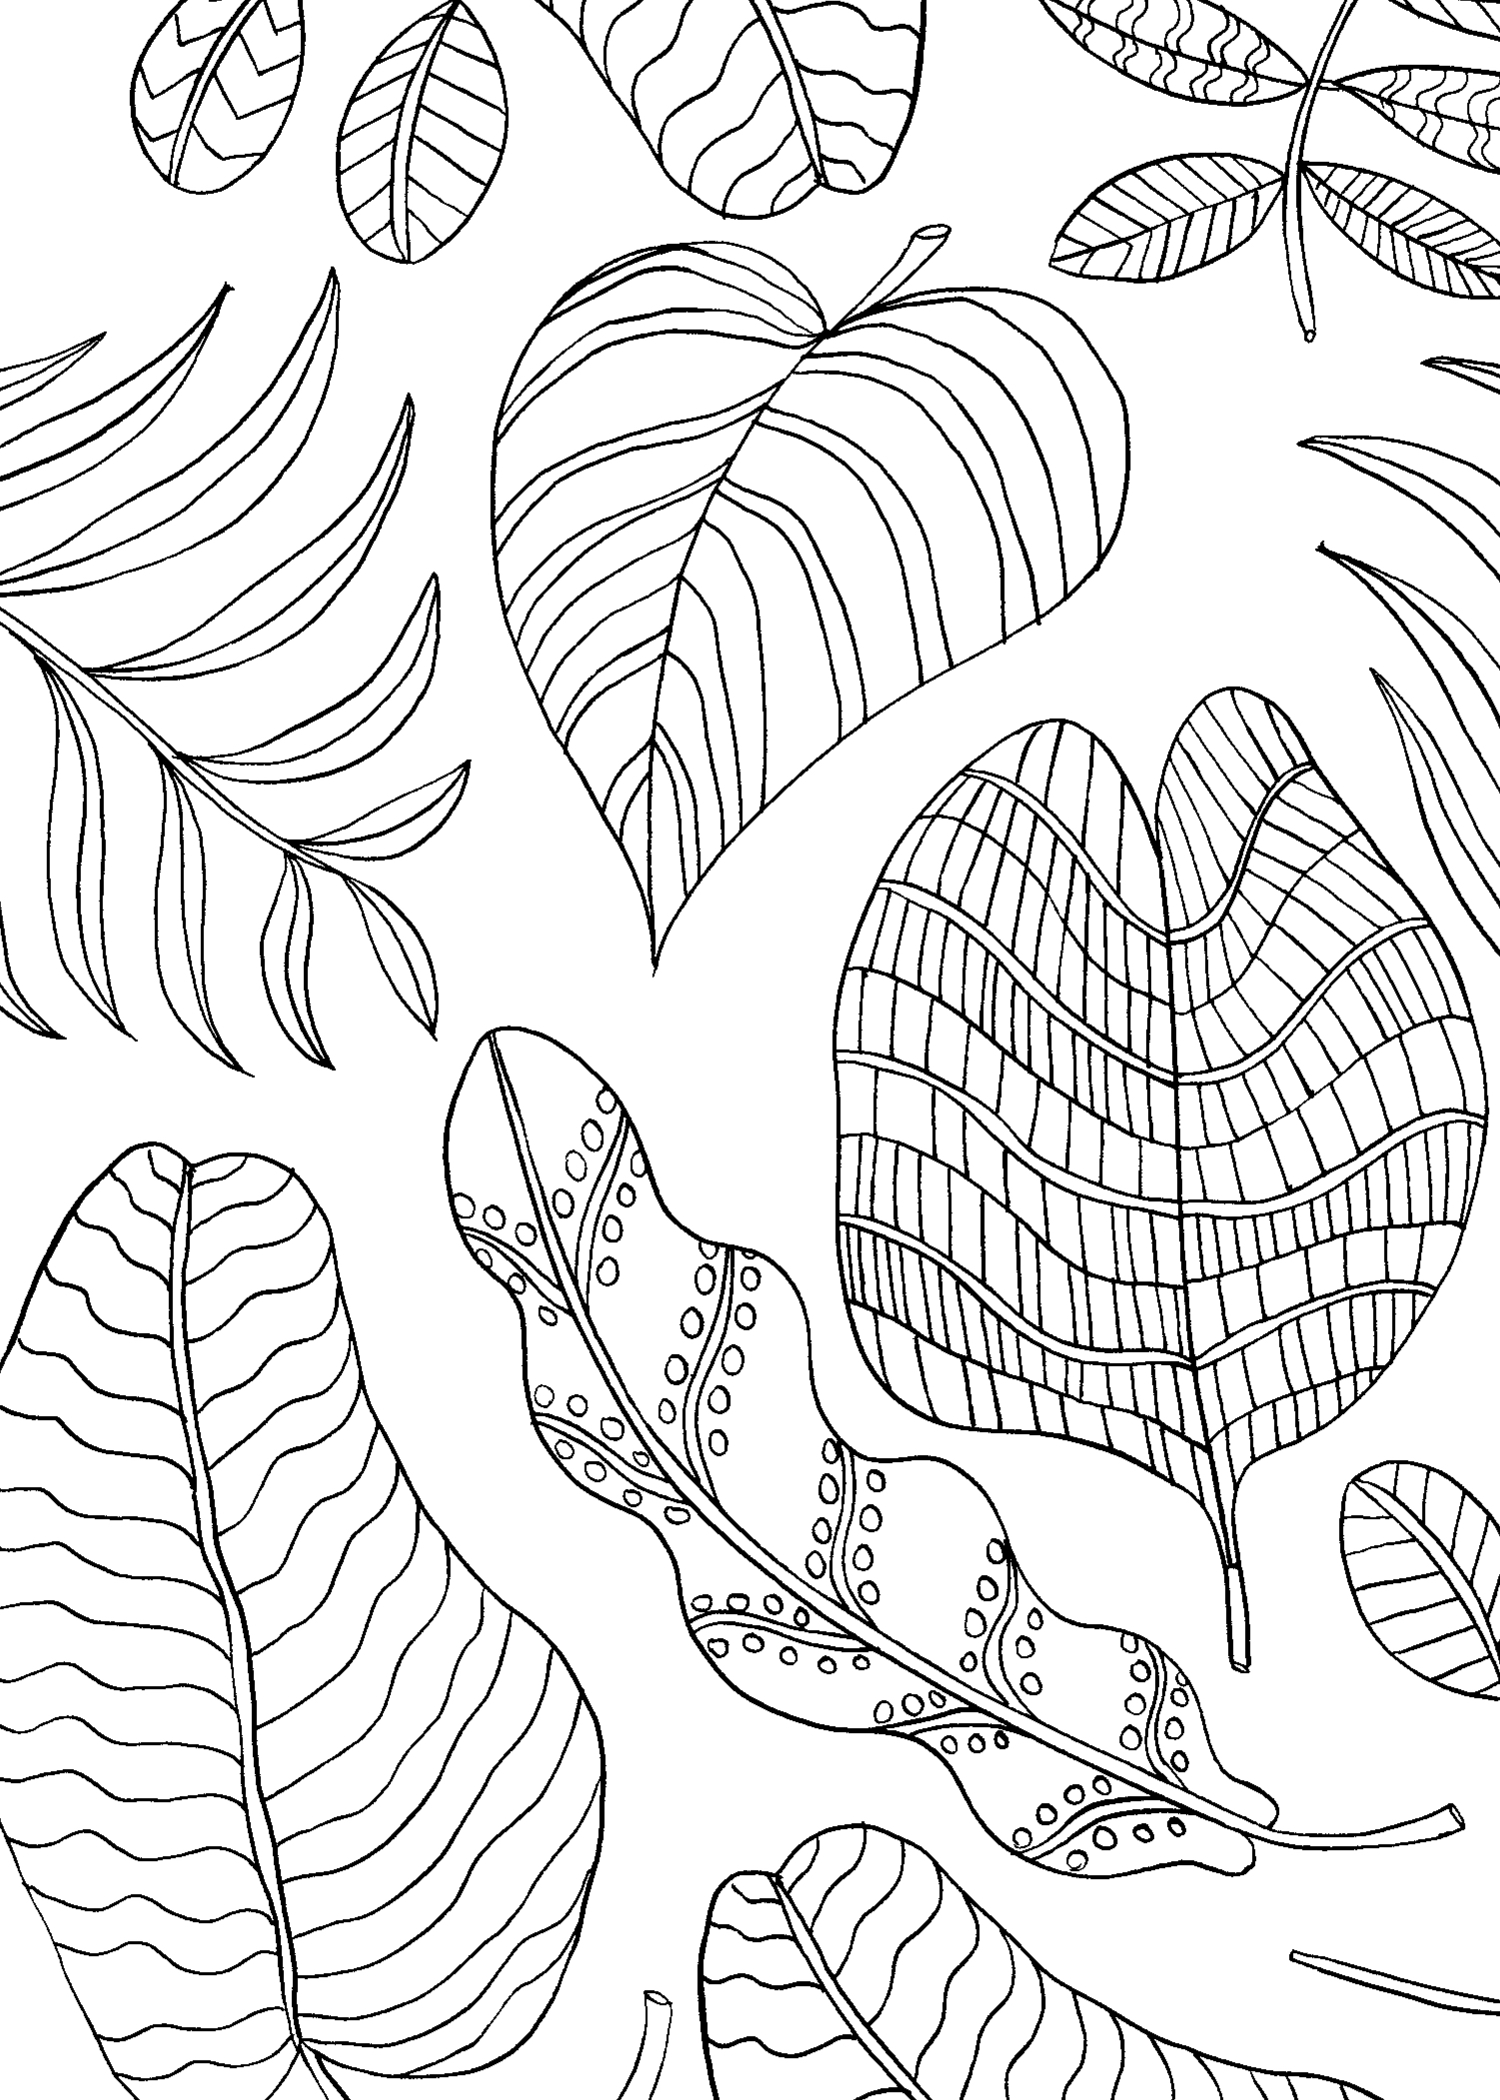 Mindfulness Coloring Activities